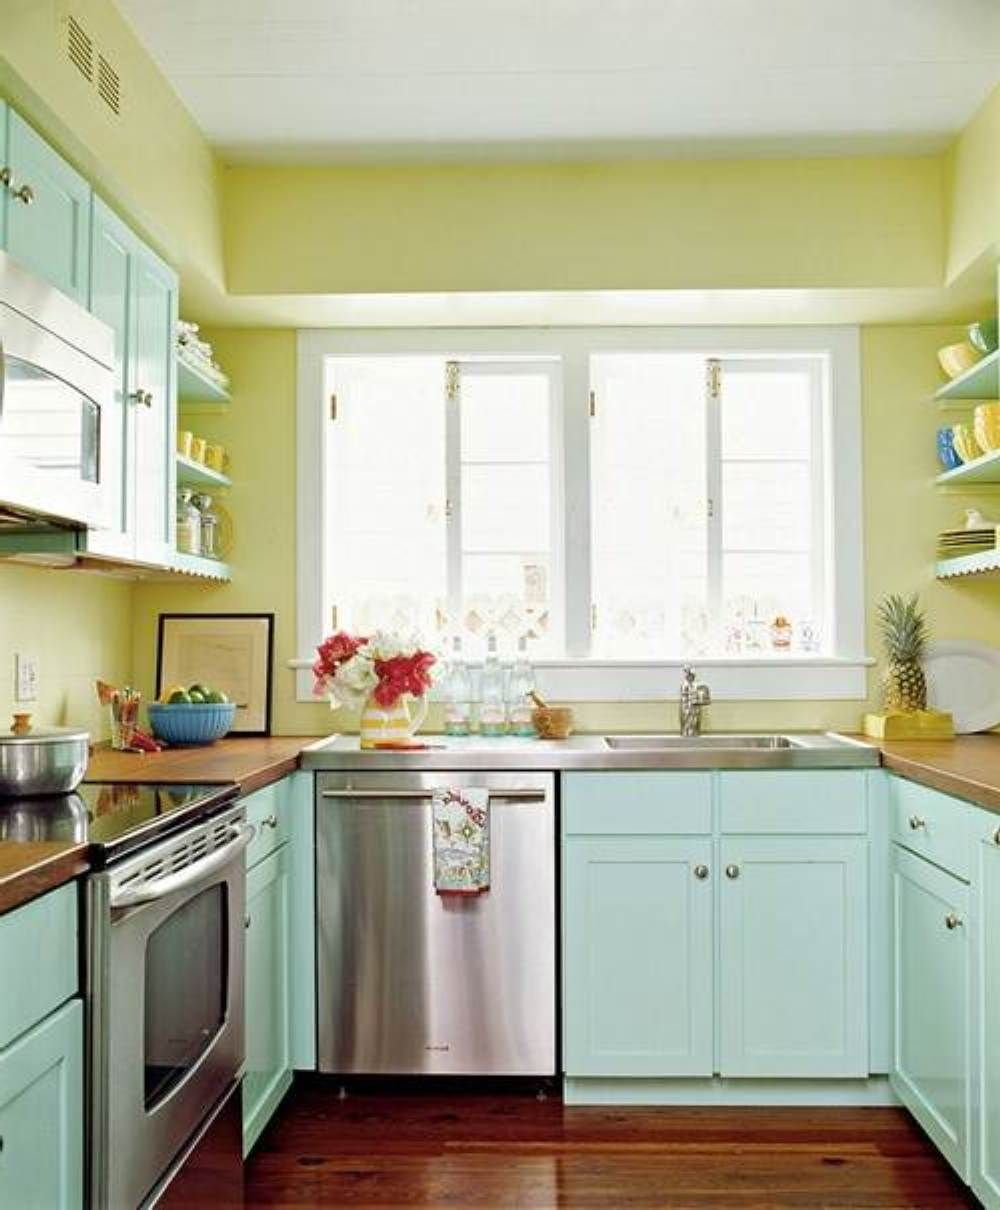 Delightful Small Kitchen Design Ideas